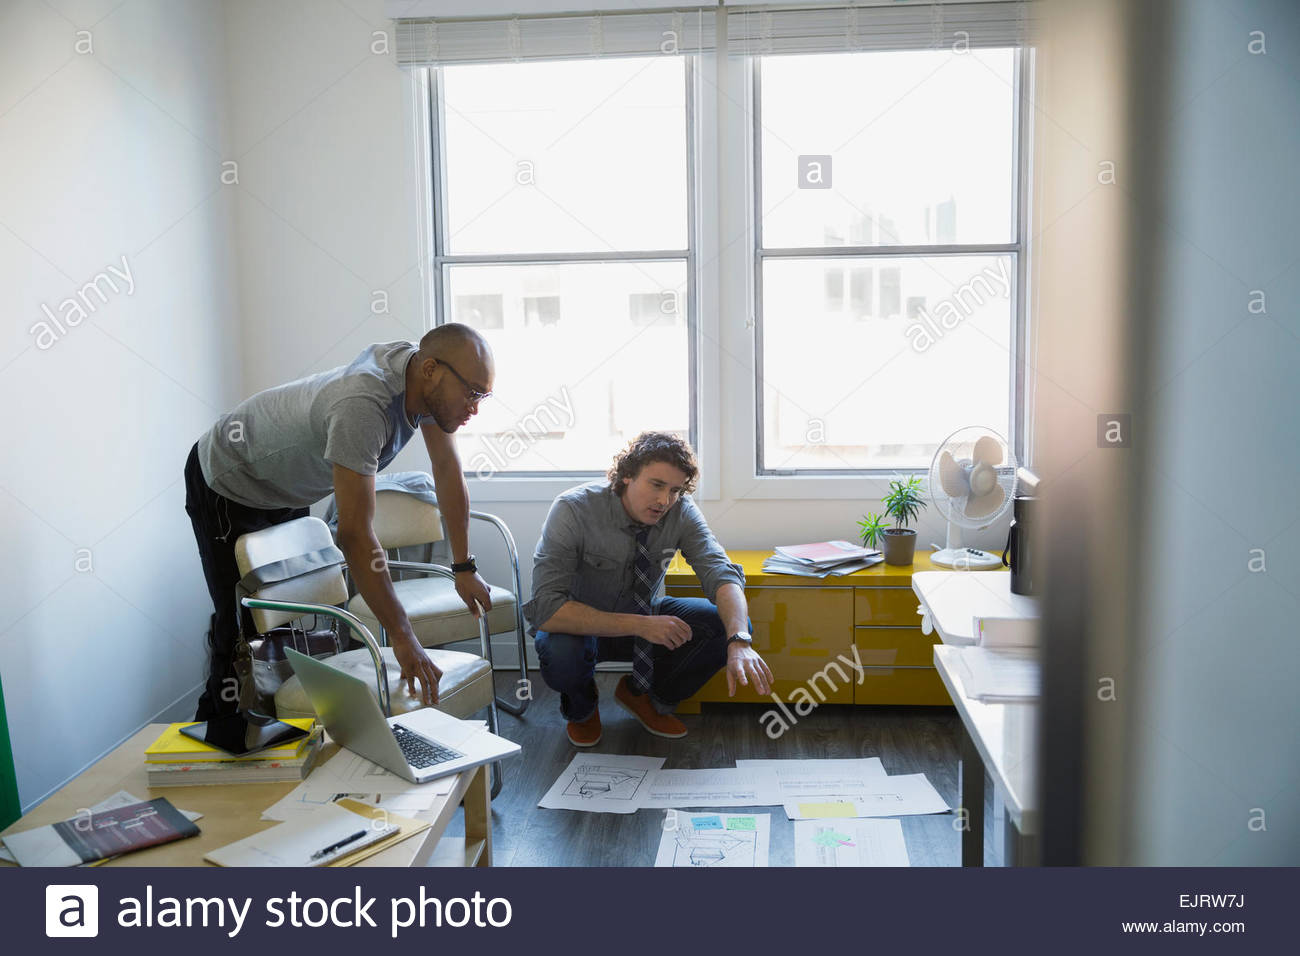 Architects reviewing blueprints on office floor - Stock Image